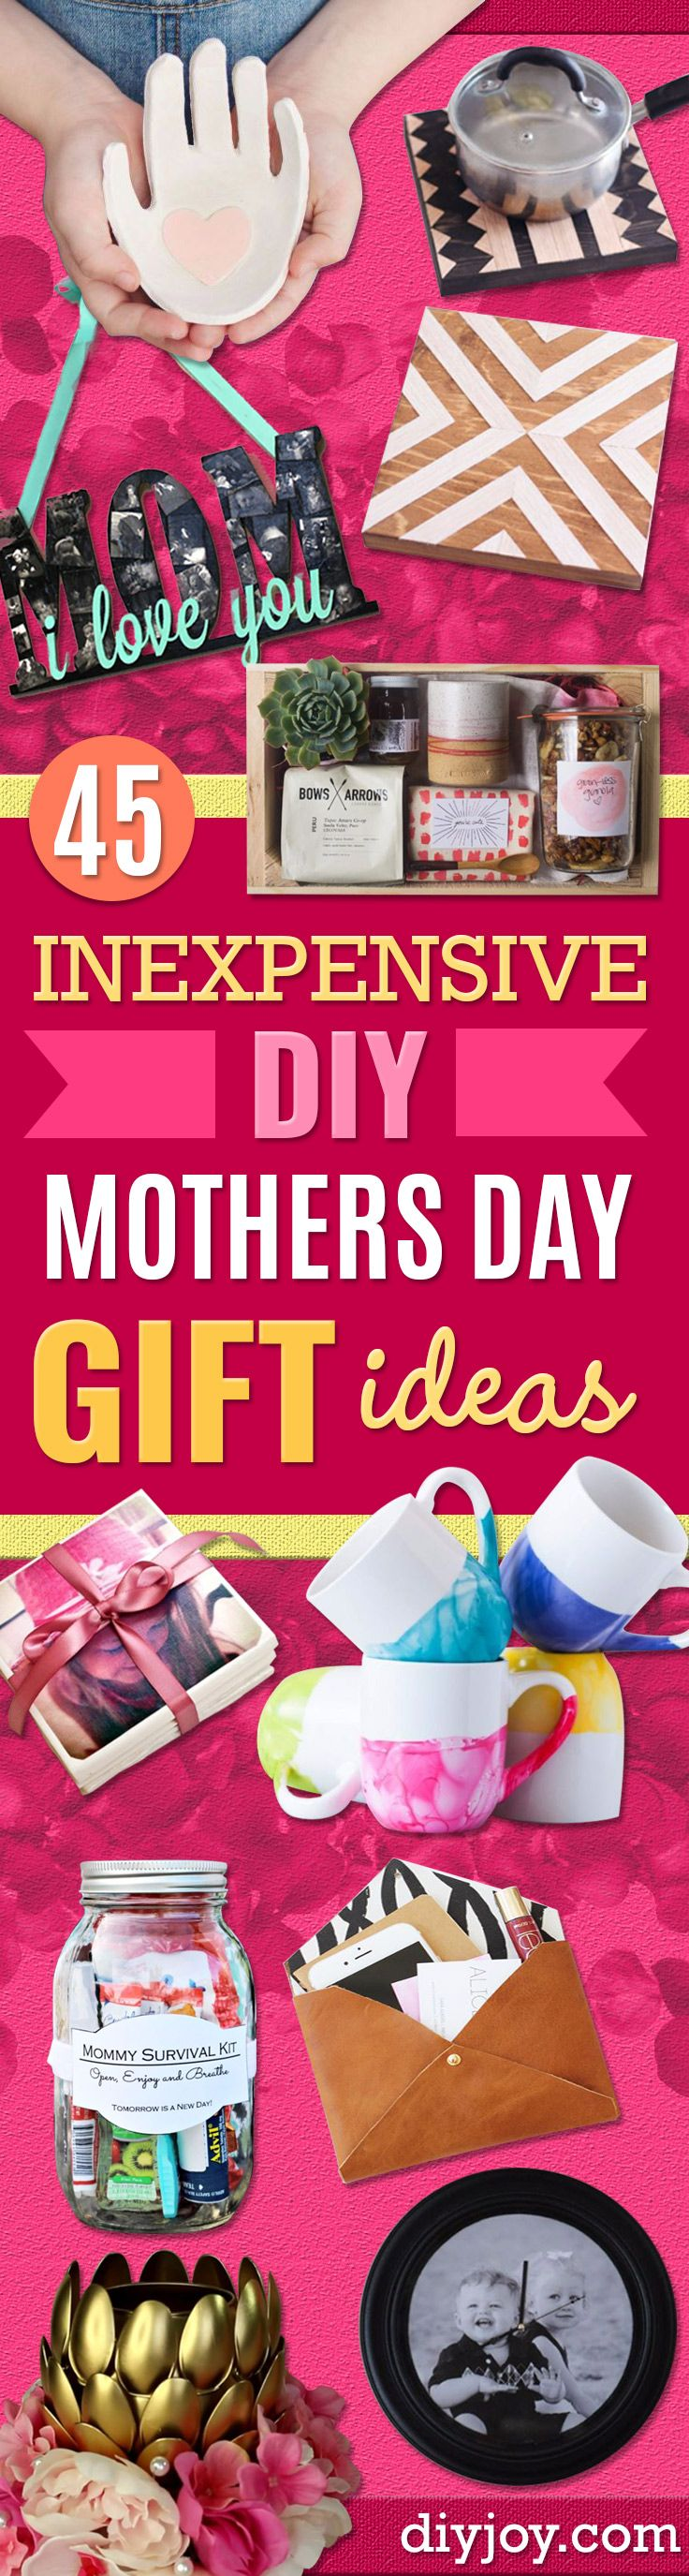 DIY Mothers Day Gift Ideas - Homemade Gifts for Moms - Crafts and Do It Yourself Home Decor, Accessories and Fashion To Make For Mom - Mothers Love Handmade Presents on Mother's Day - DIY Projects and Crafts by DIY JOY http://diyjoy.com/diy-mothers-day-gi